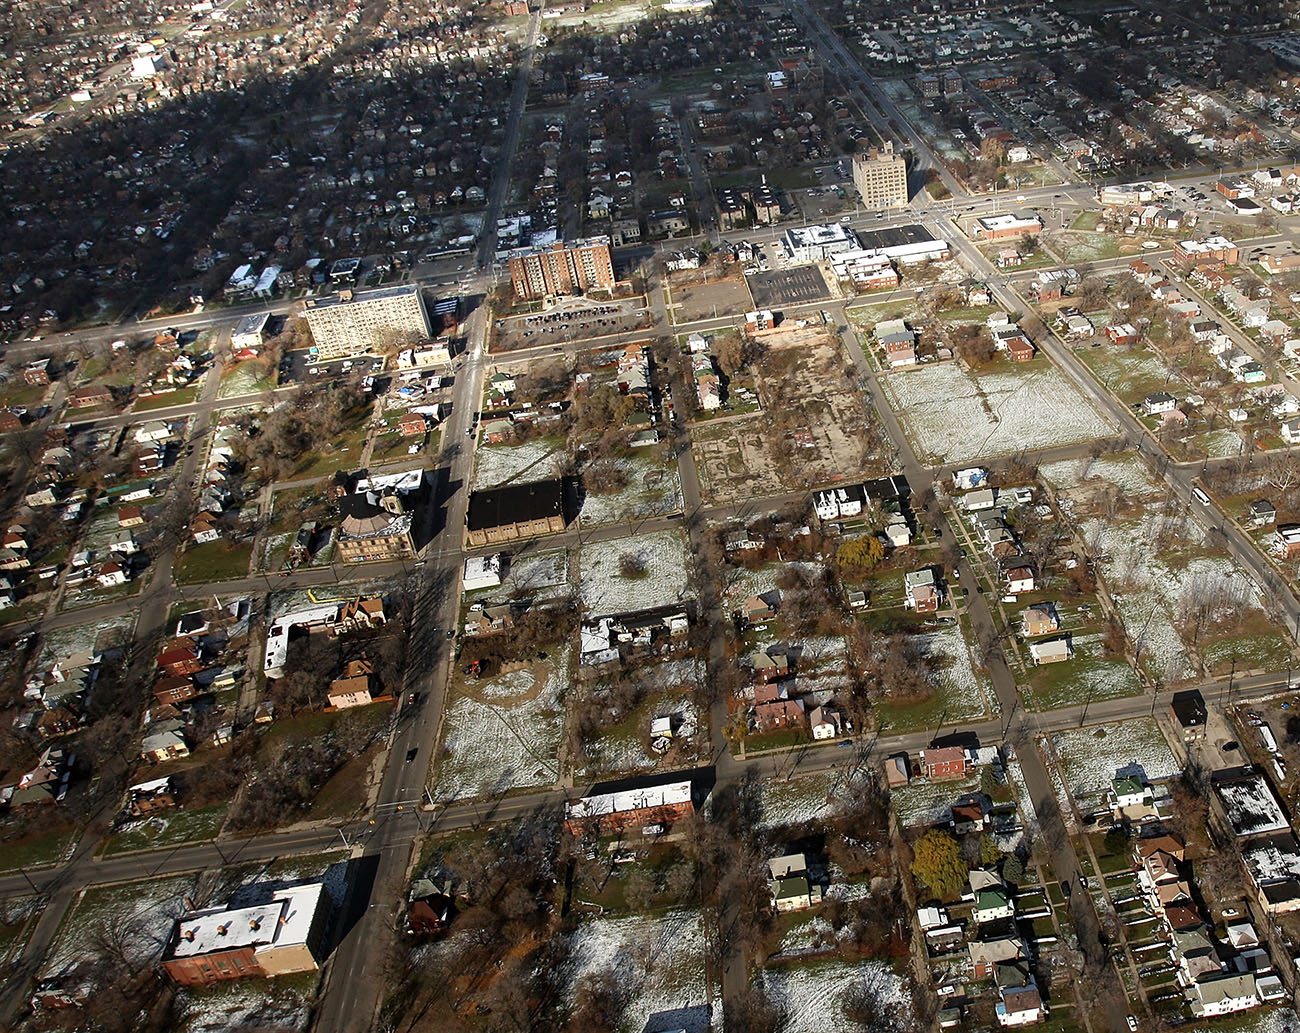 An aerial view of a Detroit neighborhood with numerous empty lots. (Credit: Spencer Platt/Getty Images)